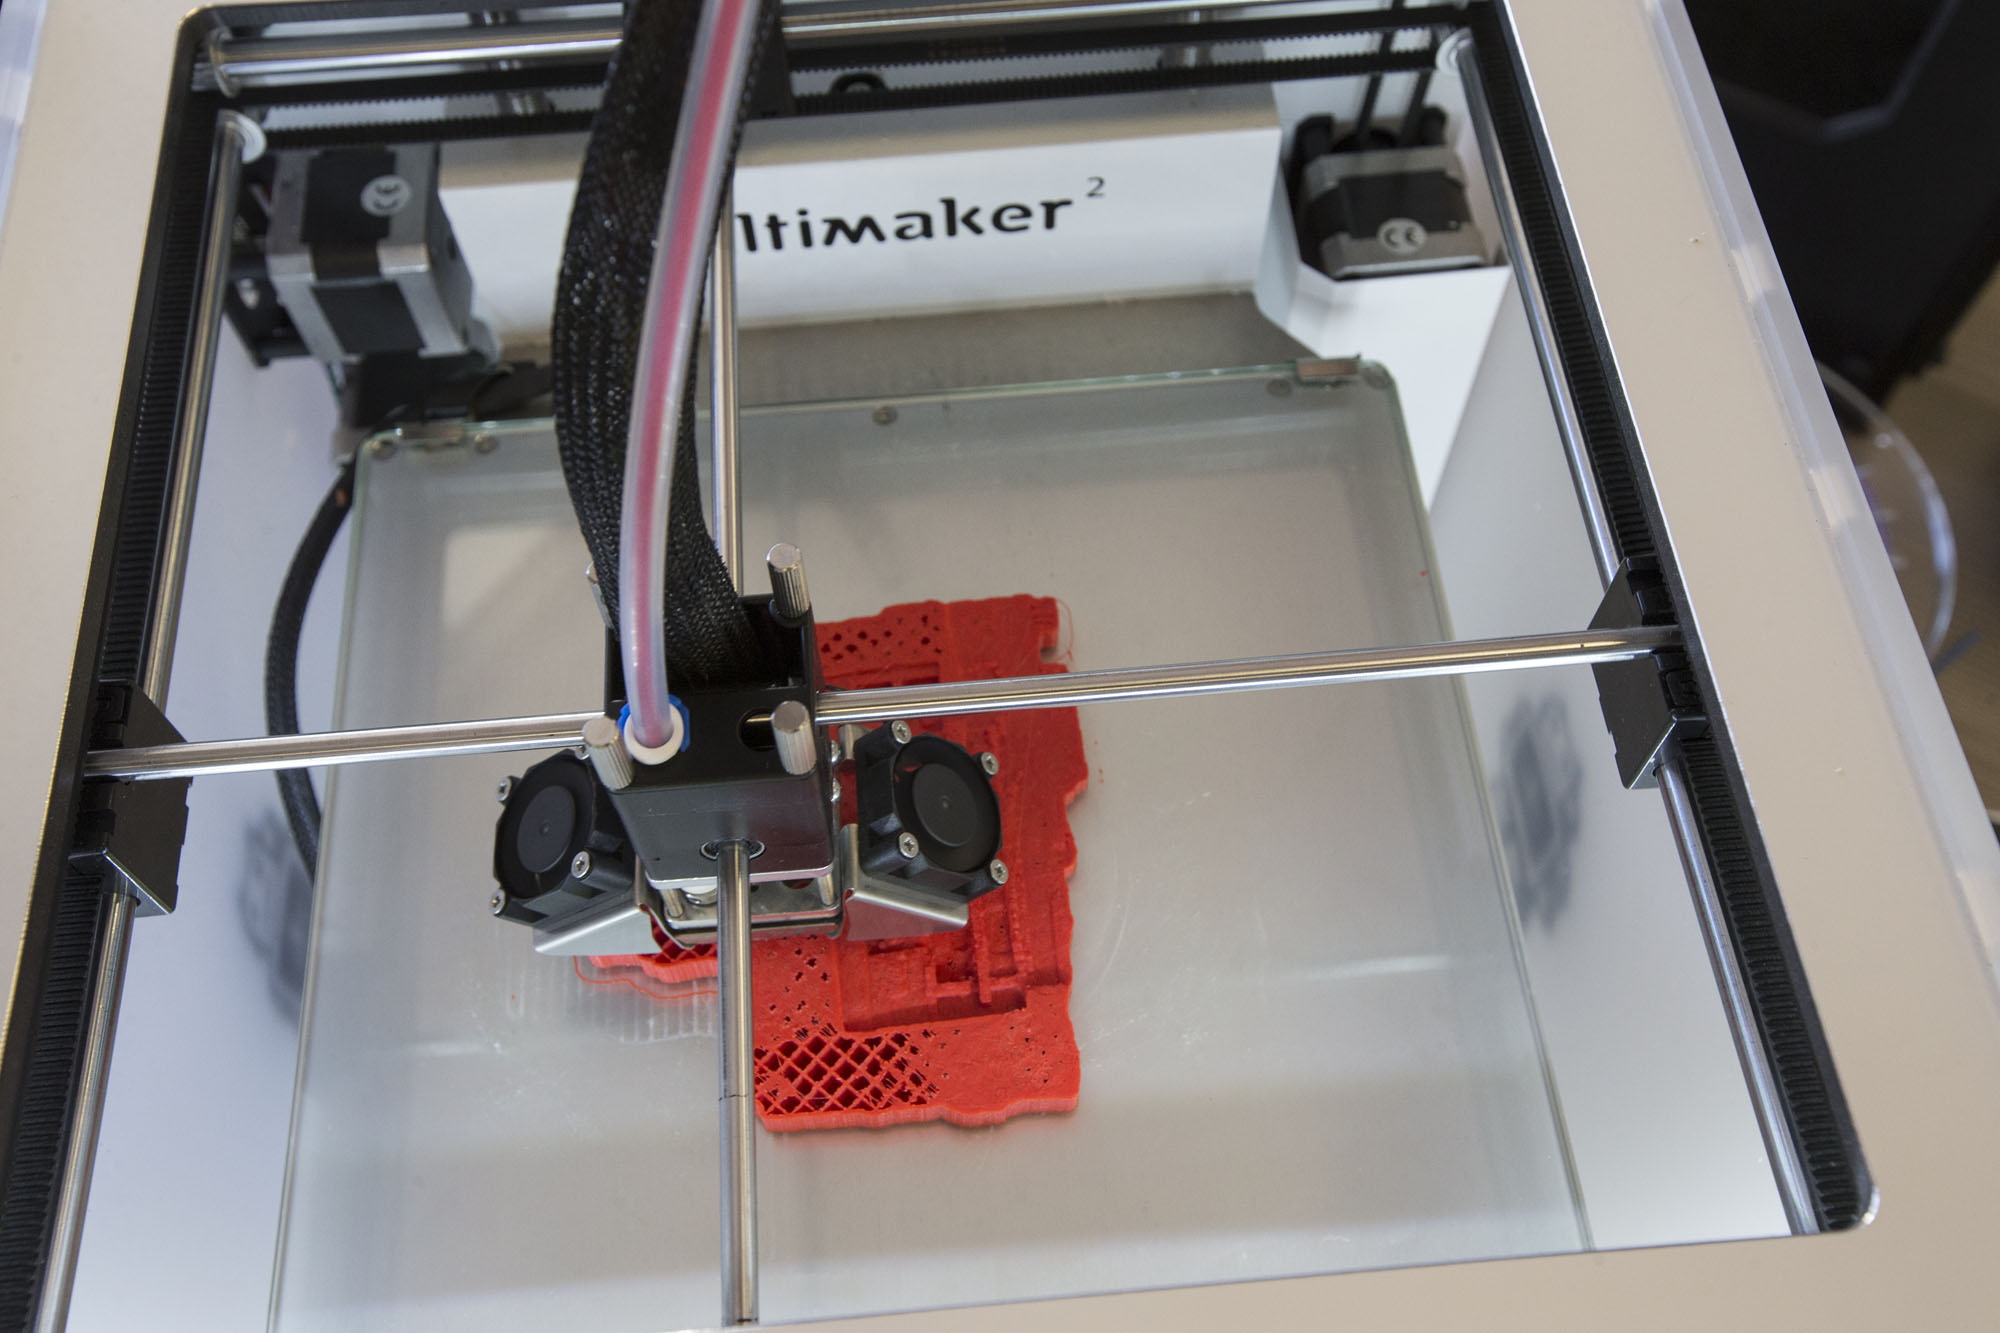 The Makerspace's Ultimaker 3-D printer creates a detailed miniature of the Morgantina dig site in Sicily.